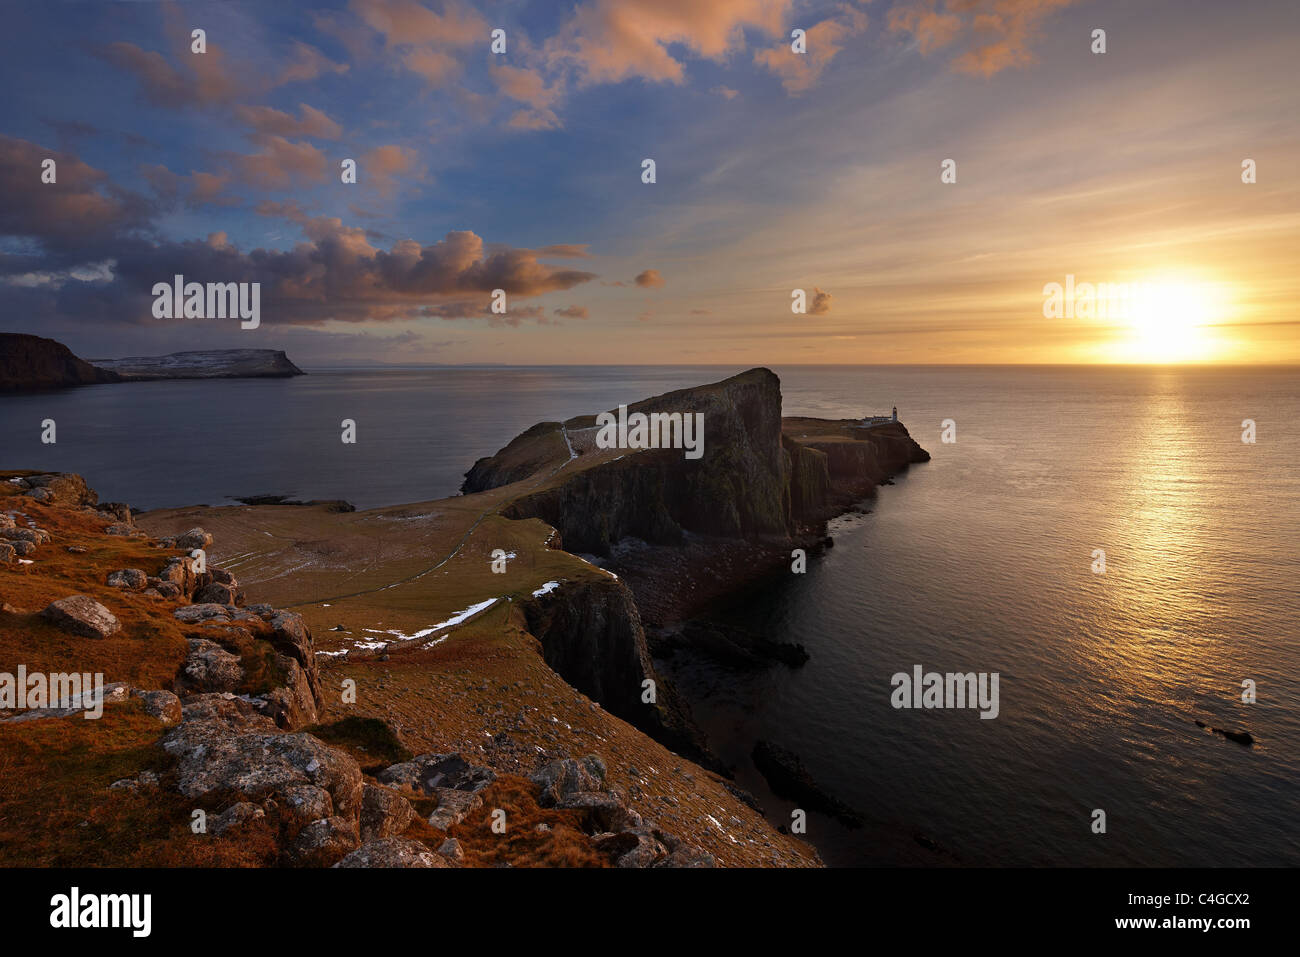 Neist Point, Isle of Skye, Scotland - Stock Image